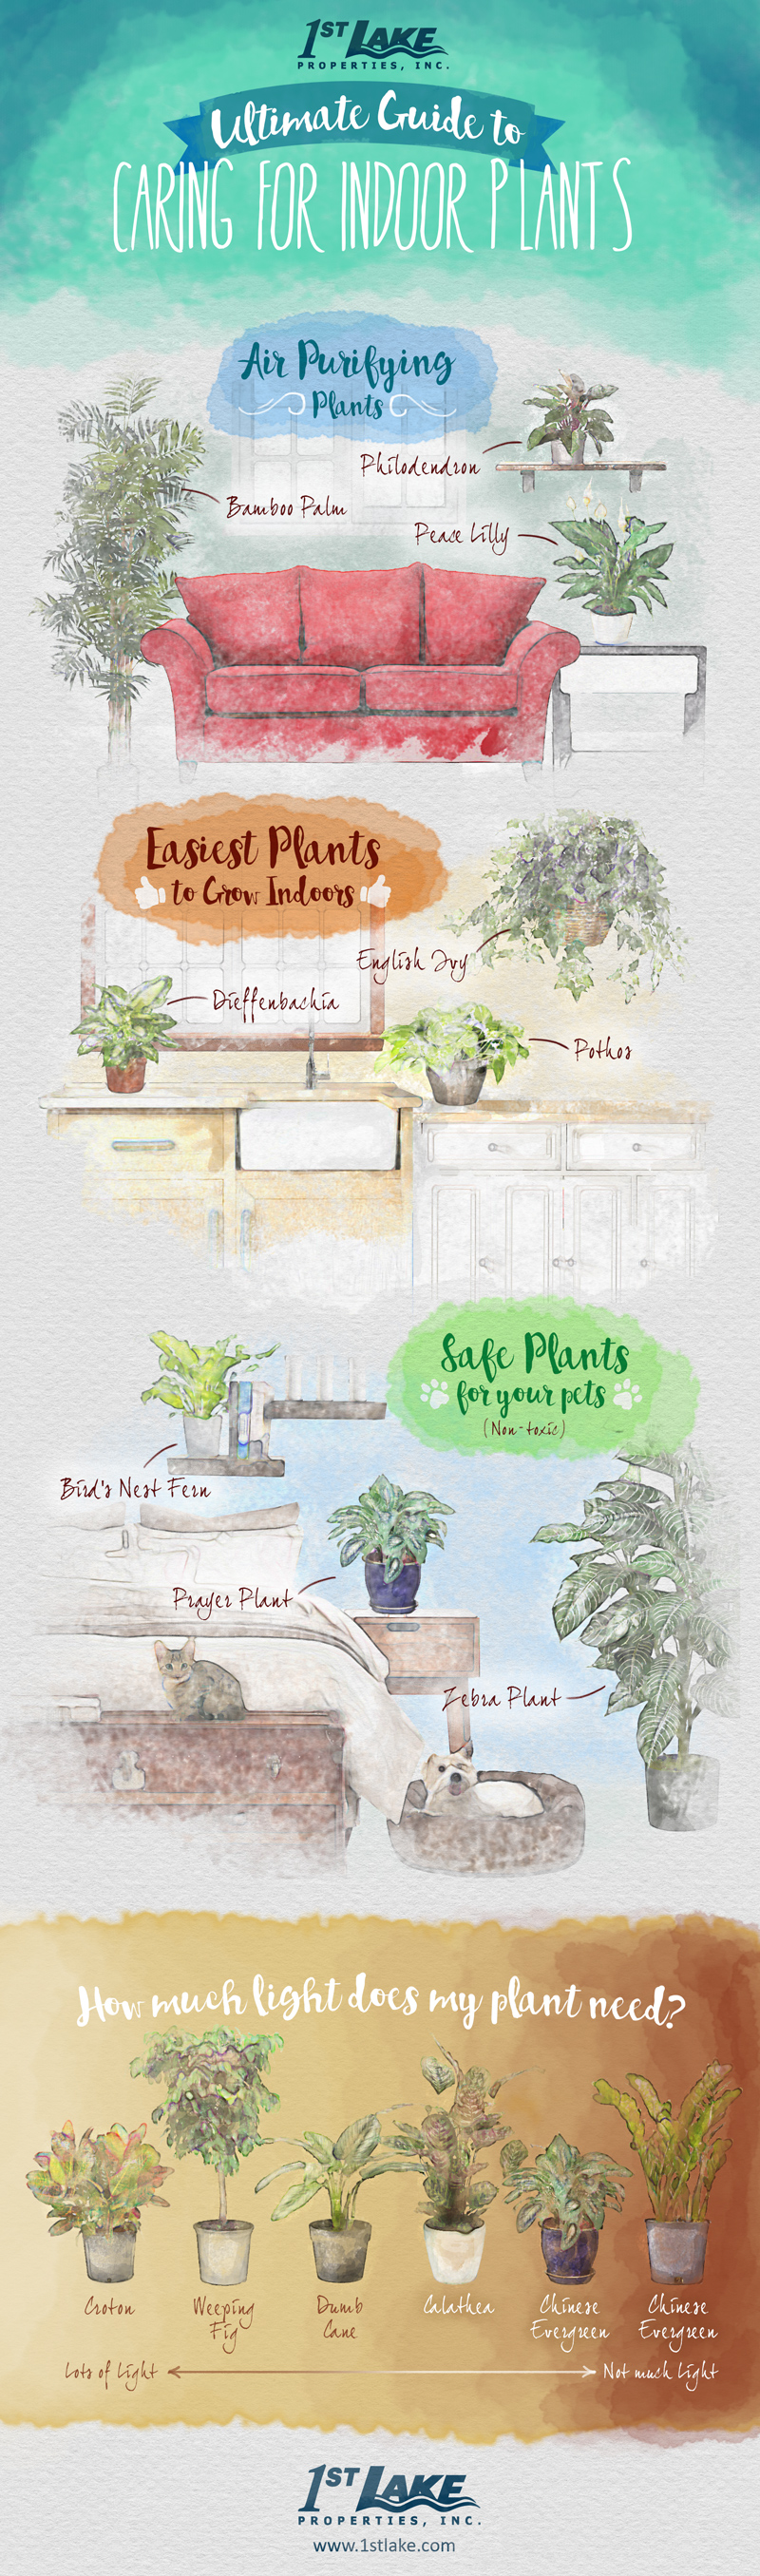 1st lake the ultimate guide to caring for indoor plants